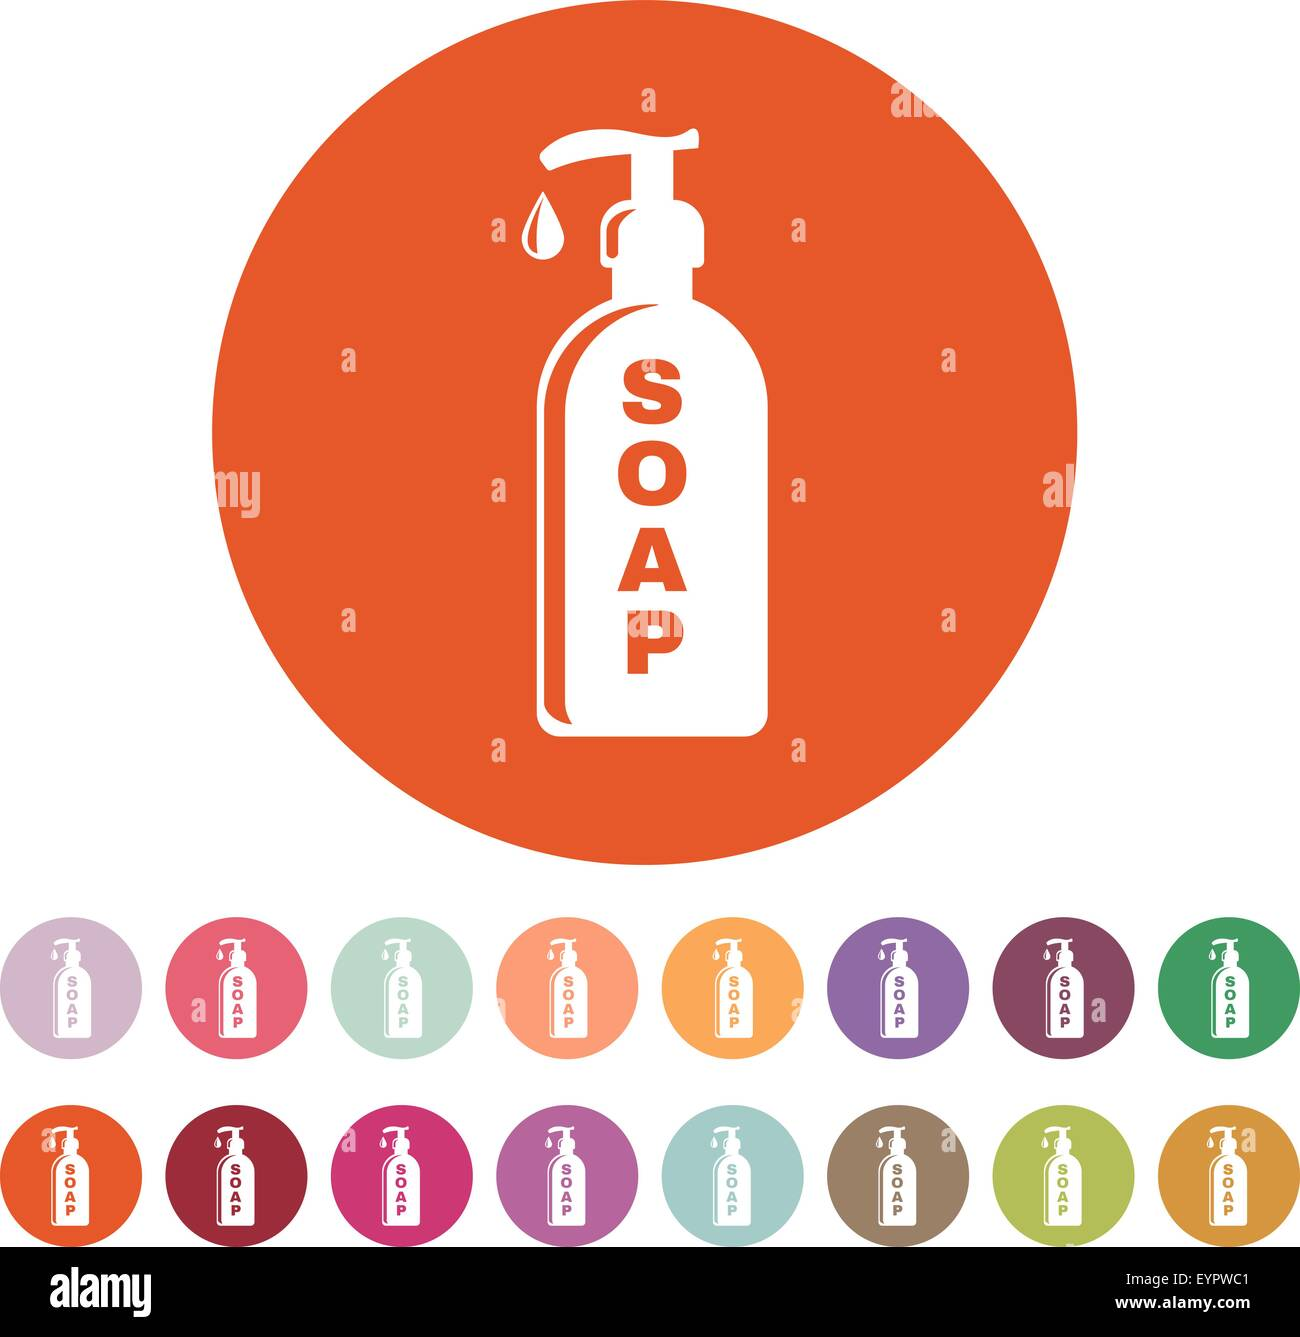 The liquid soap icon hand wash symbol flat stock vector art hand wash symbol flat buycottarizona Image collections